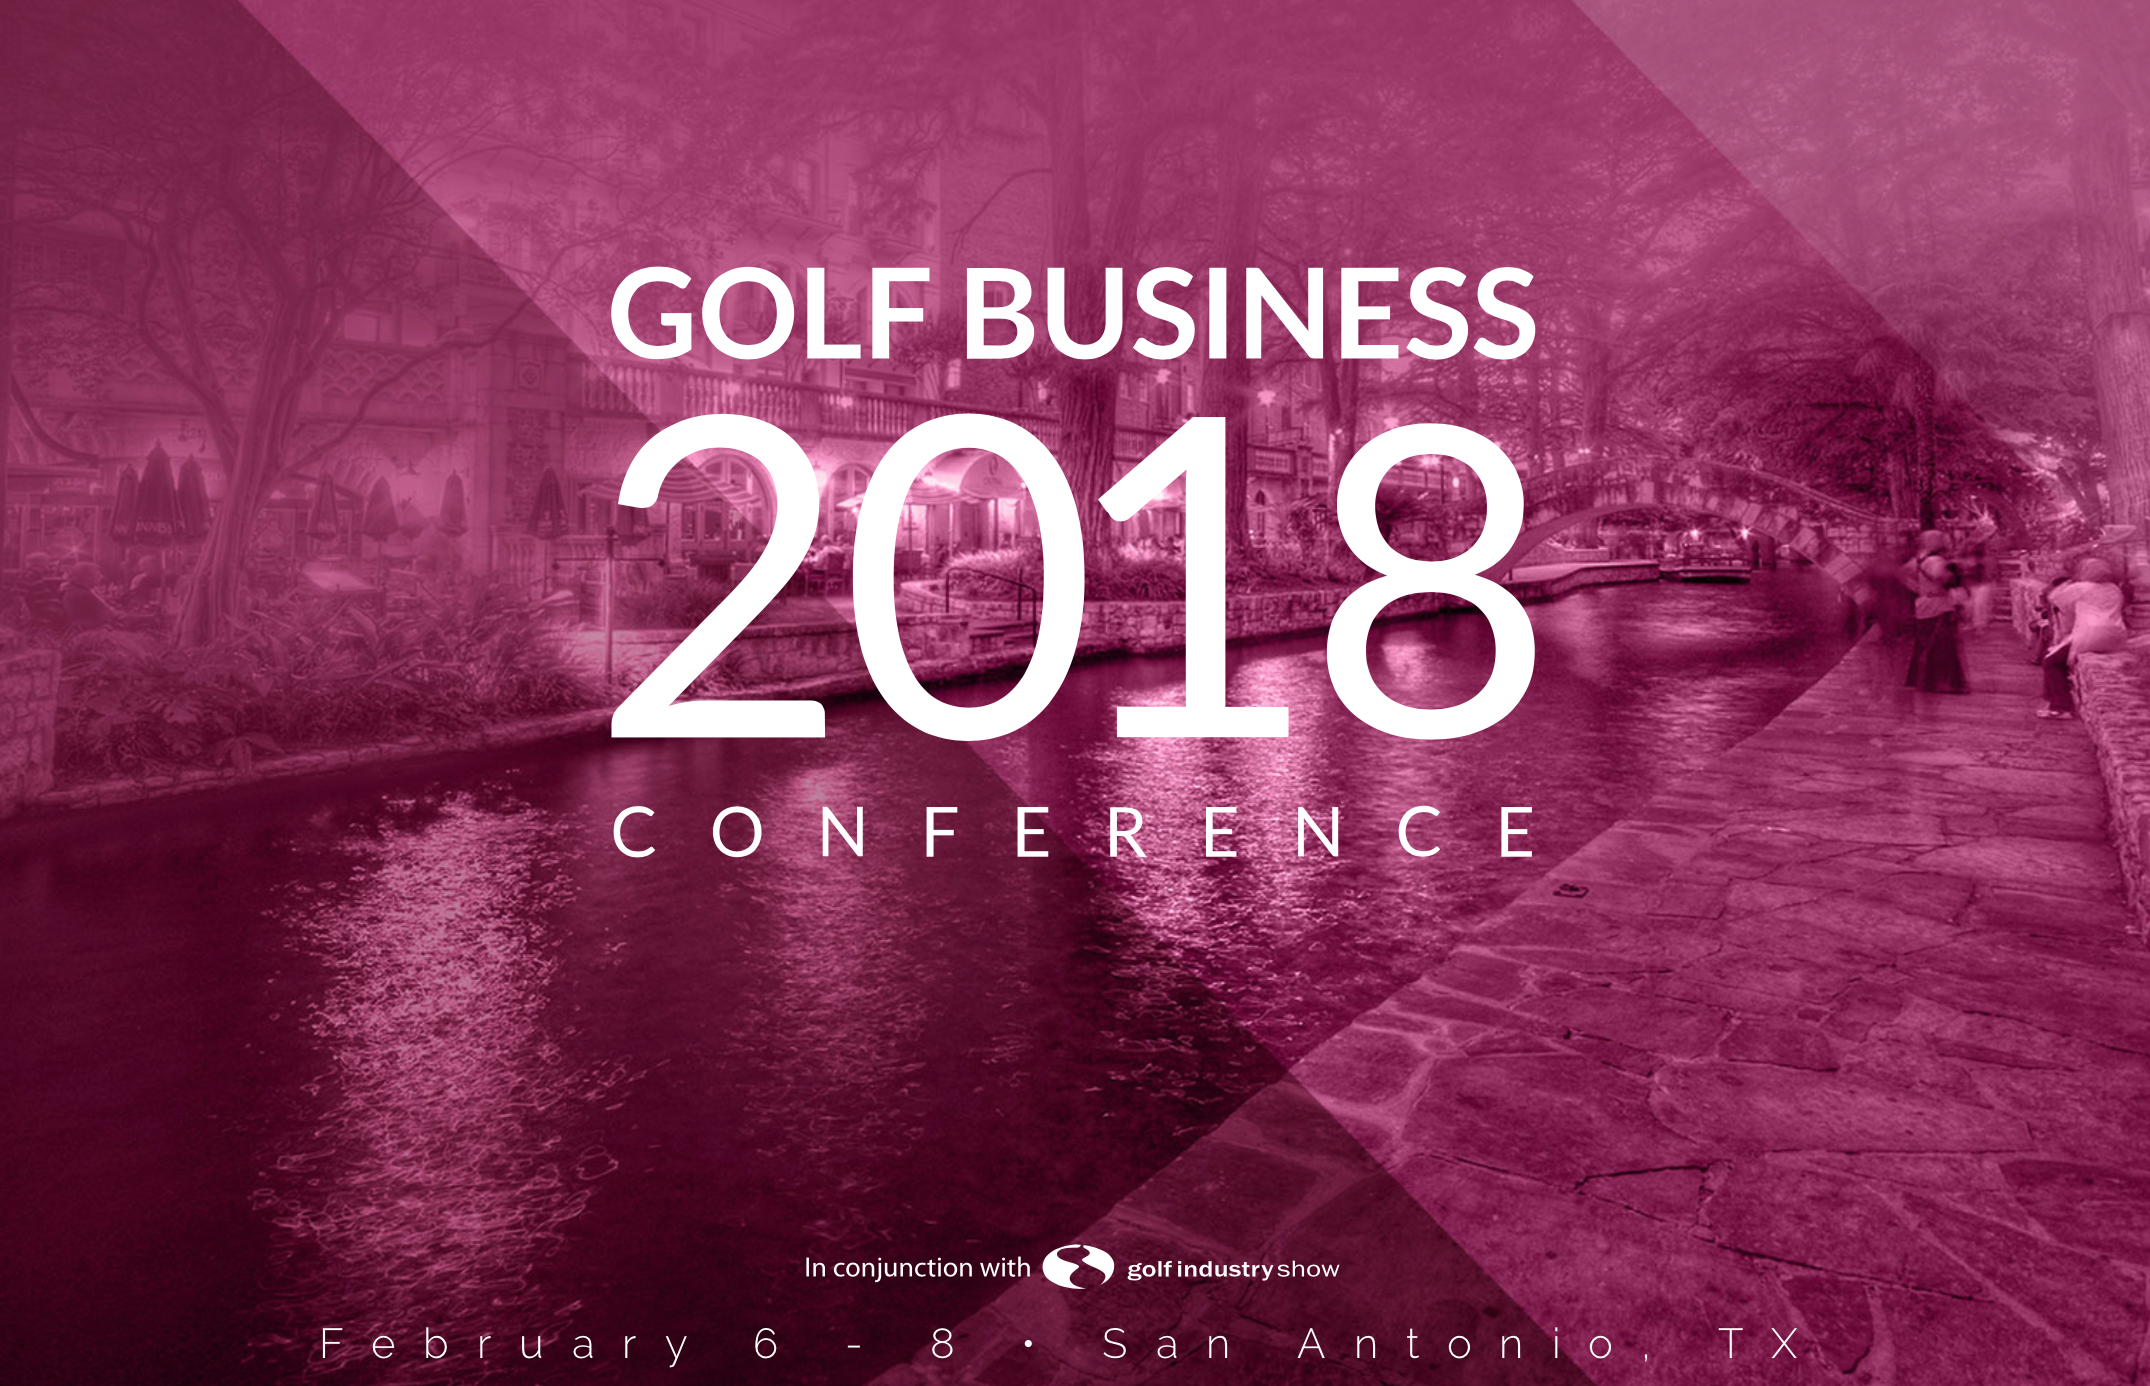 Photo:  www.golfbusinessconference.com